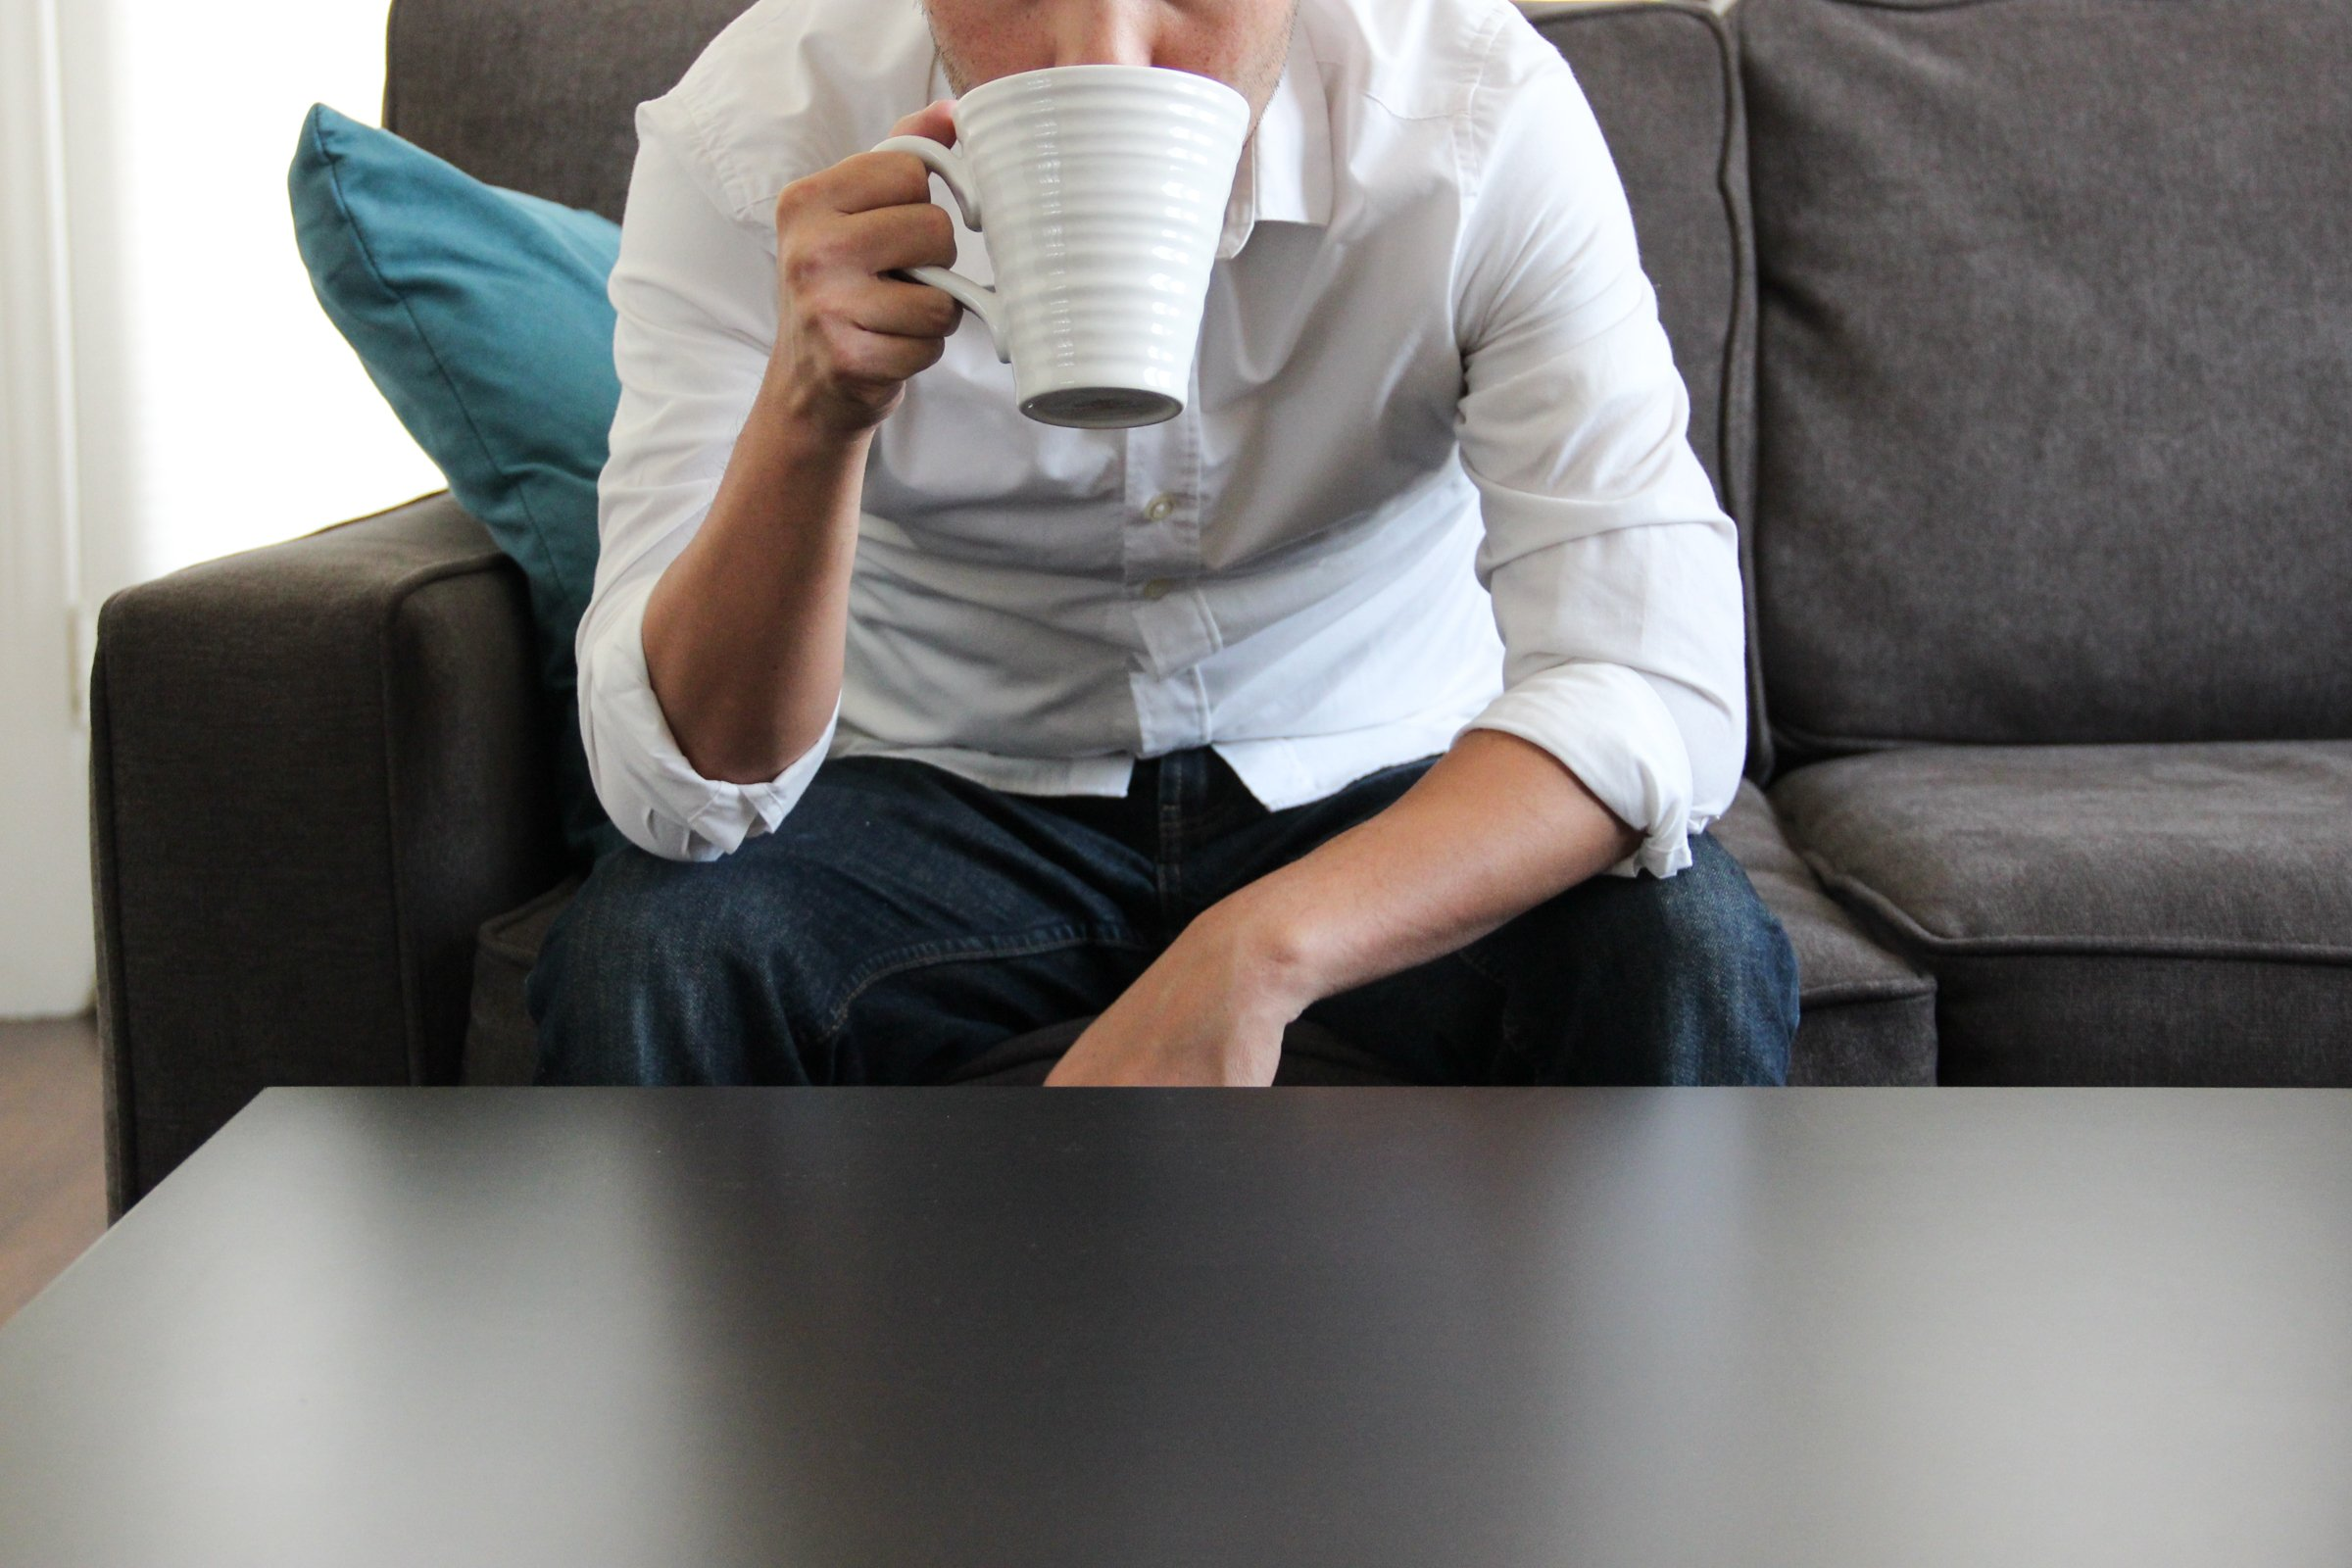 Man on Couch Drinking from Mug